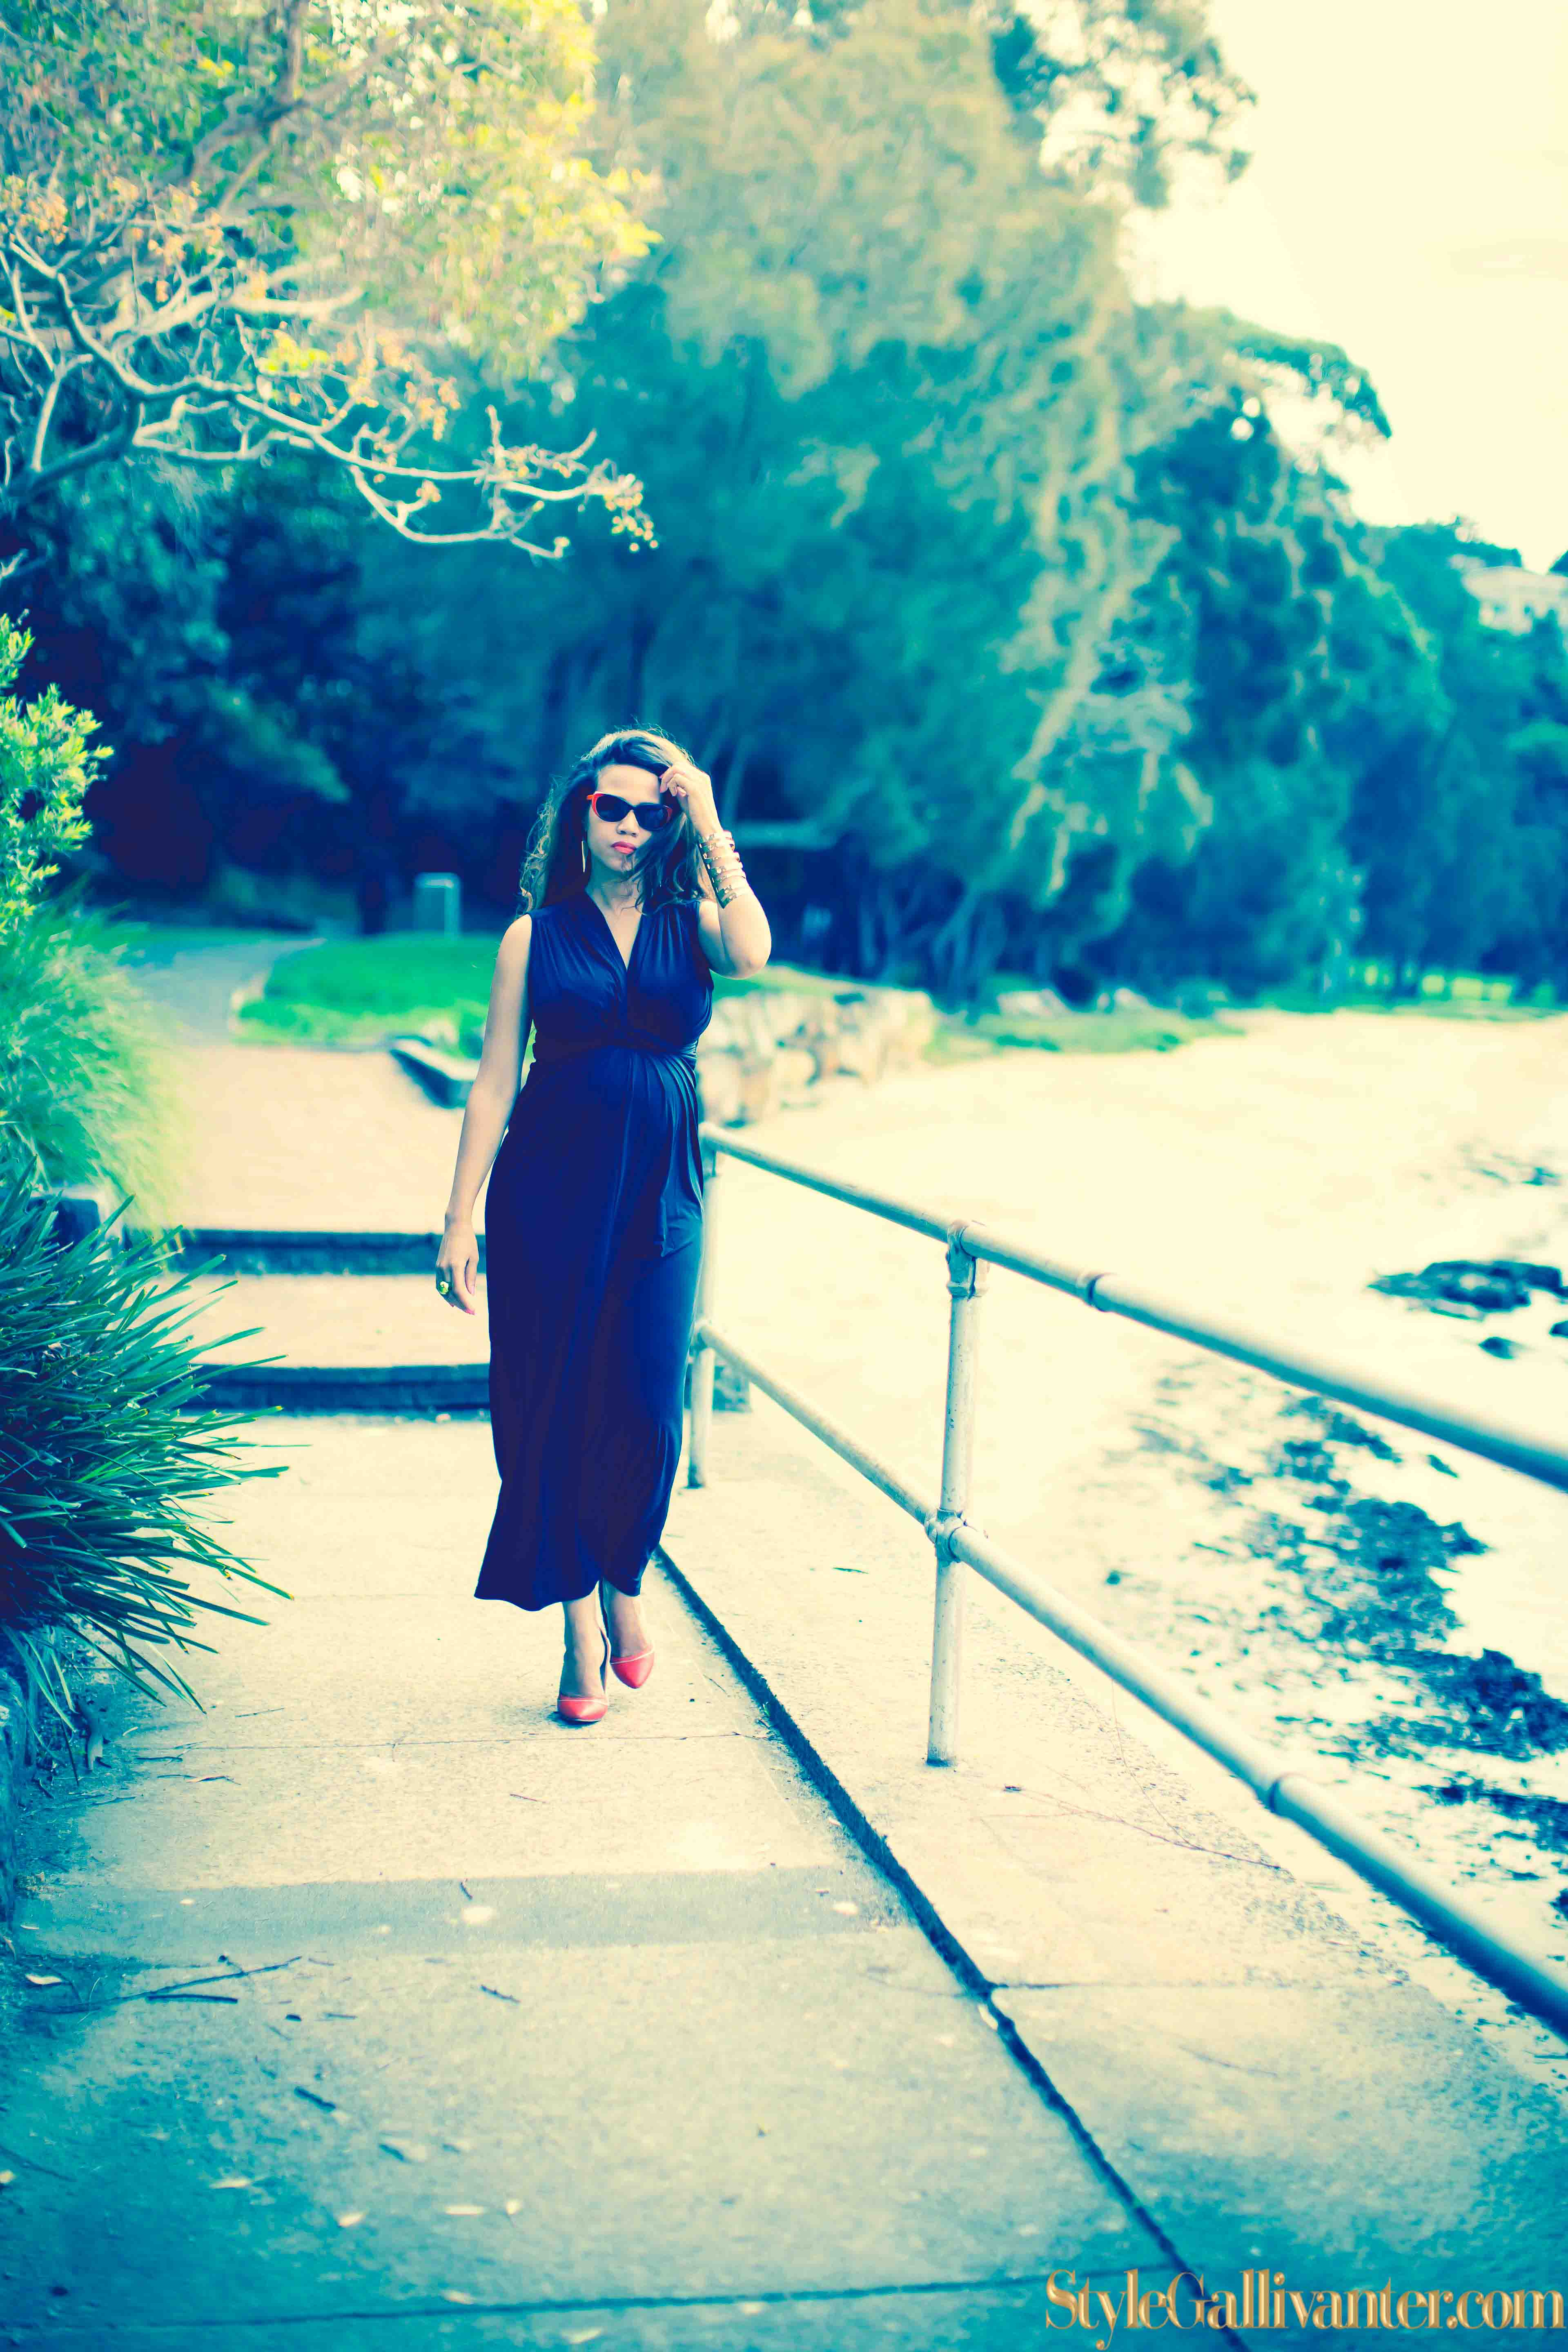 GLAMOUR-BUMP_EVE-OF-EDEN-MATERNITY_BEST-PREGNANT-BLOGGERS_BEST-MUMMY-BLOGGERS-MELBOURNE_MELBOURNES-TOP-FASHION-AND-LIFESTYLE-BLOGGERS-20